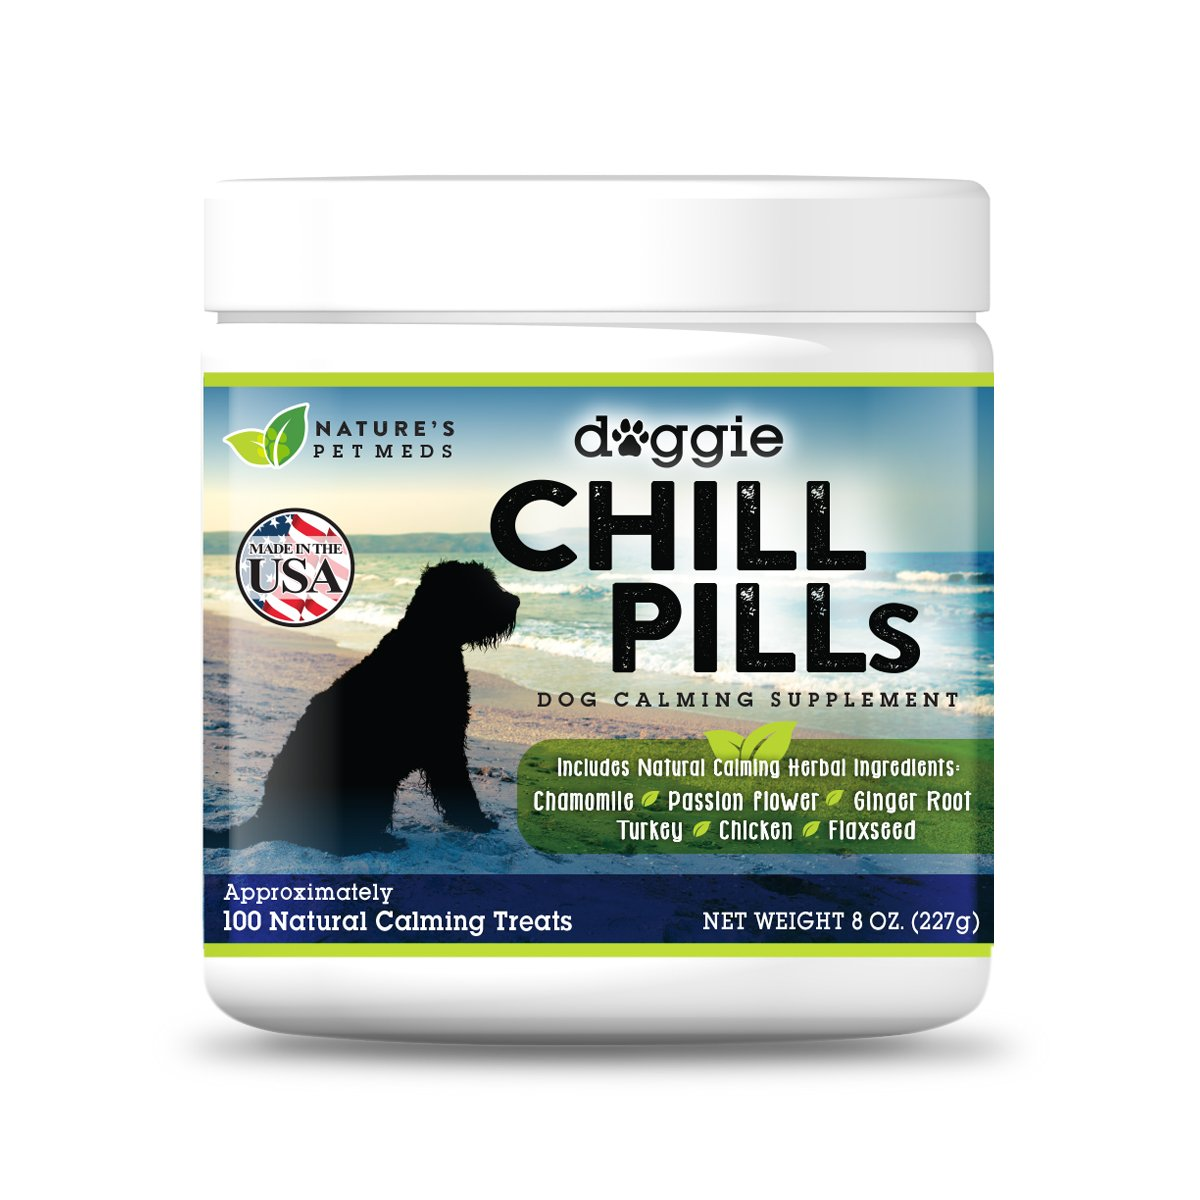 Doggie Chill Pills Calming Aid 100 Chews for Dogs Relieves Stress Separation Anxiety Storms Fireworks Nausea Safe Natural Ingredients Amino Acids Chicken and Turkey Flavored Treats Made in USA